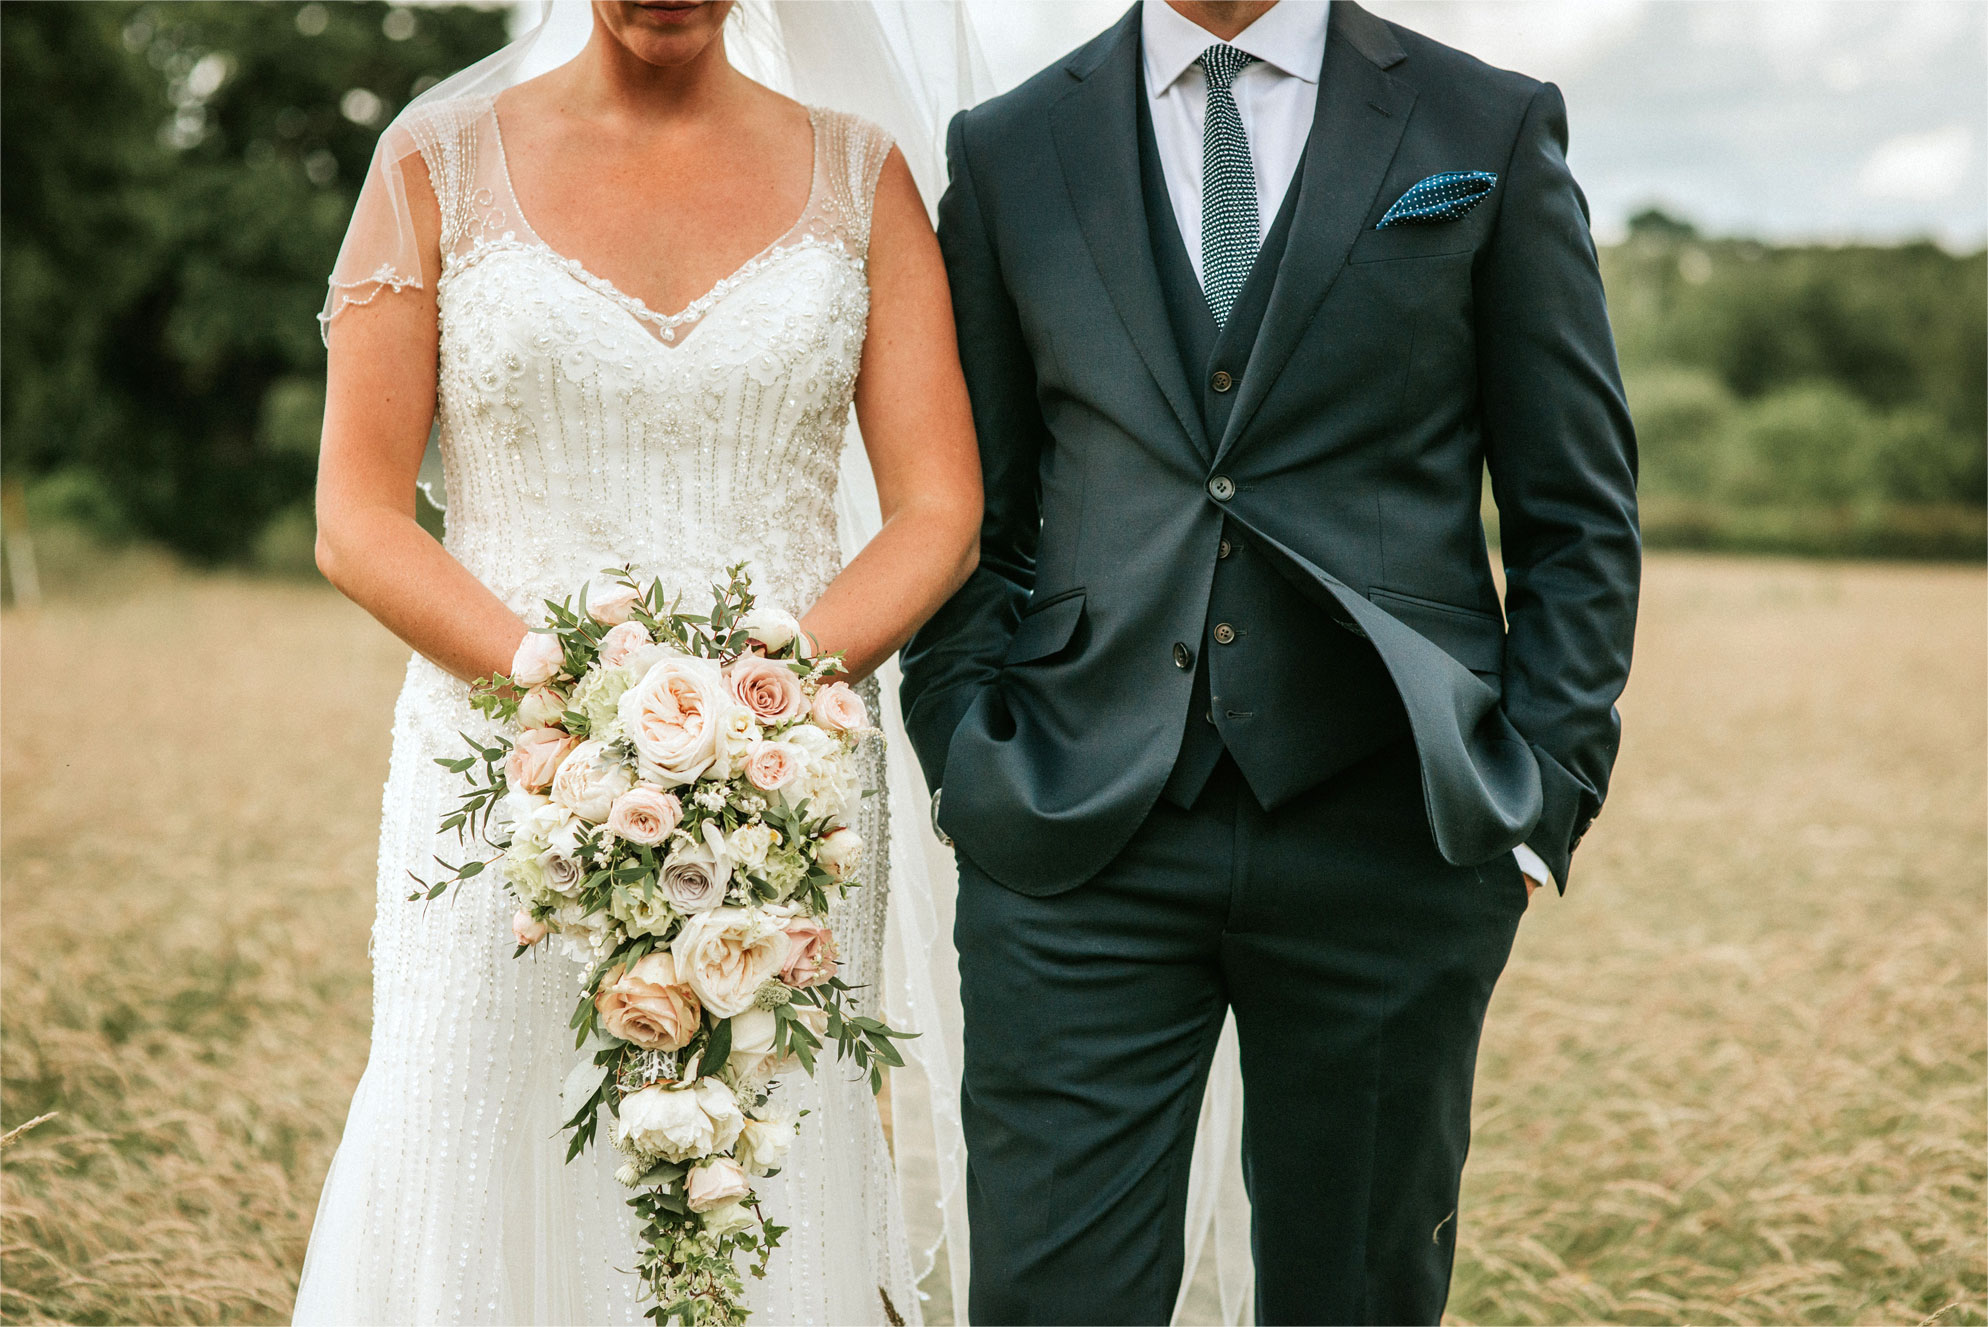 Blush grey/ or Vintage bright wedding flowers, bride bouquet and dress Theydon Garnon church Epping marquee